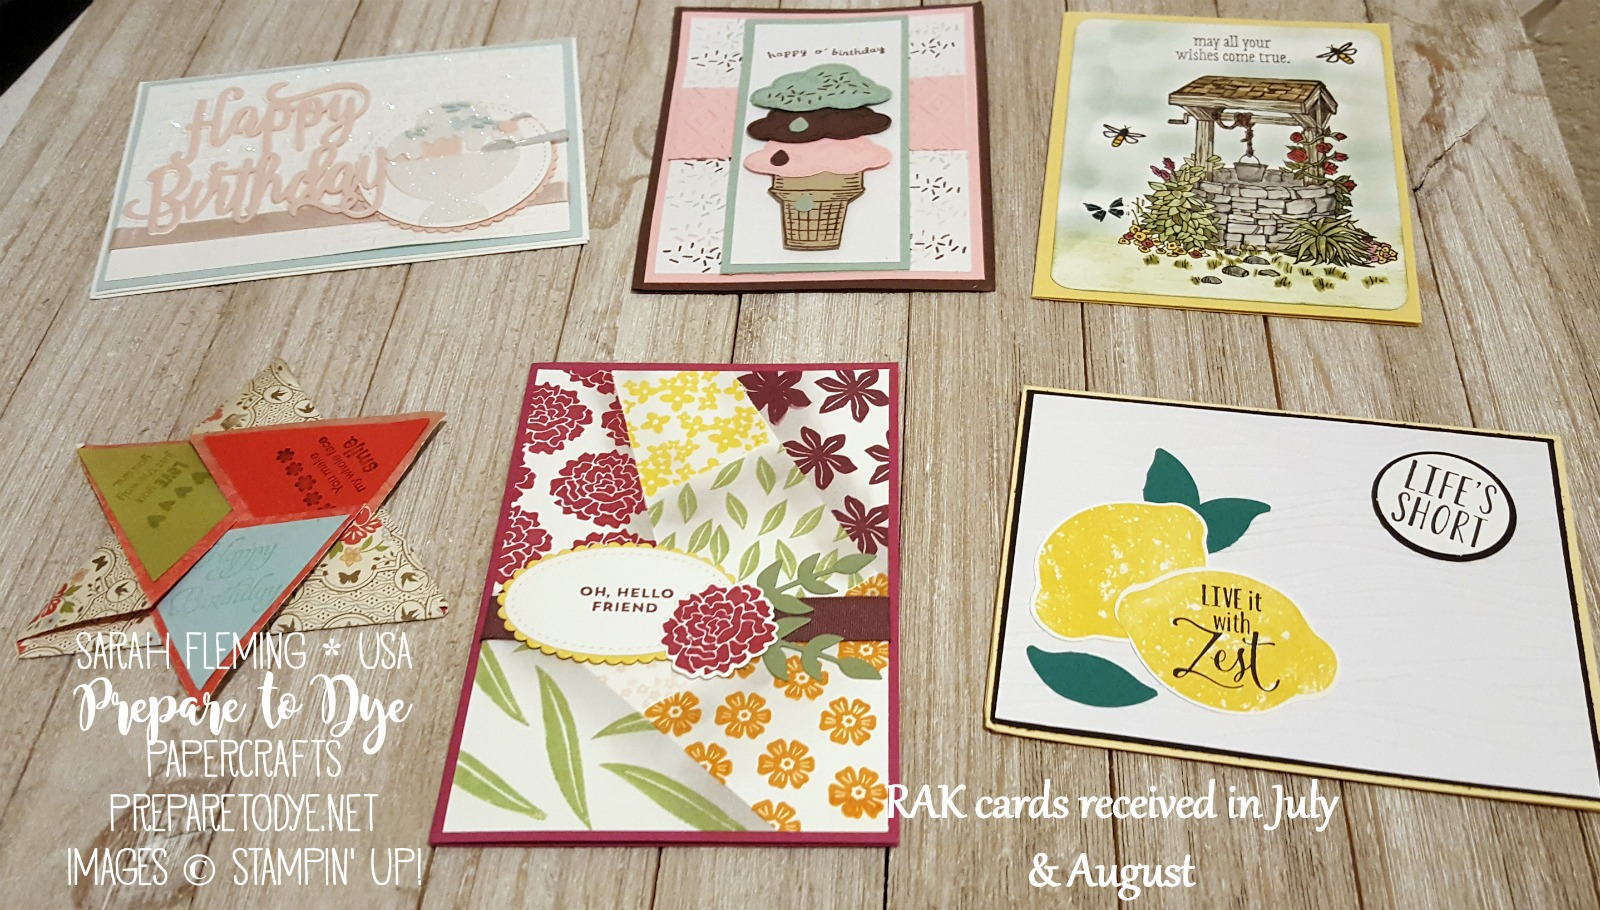 Stampin' Up! Random Act of Kindness cards & birthday cards